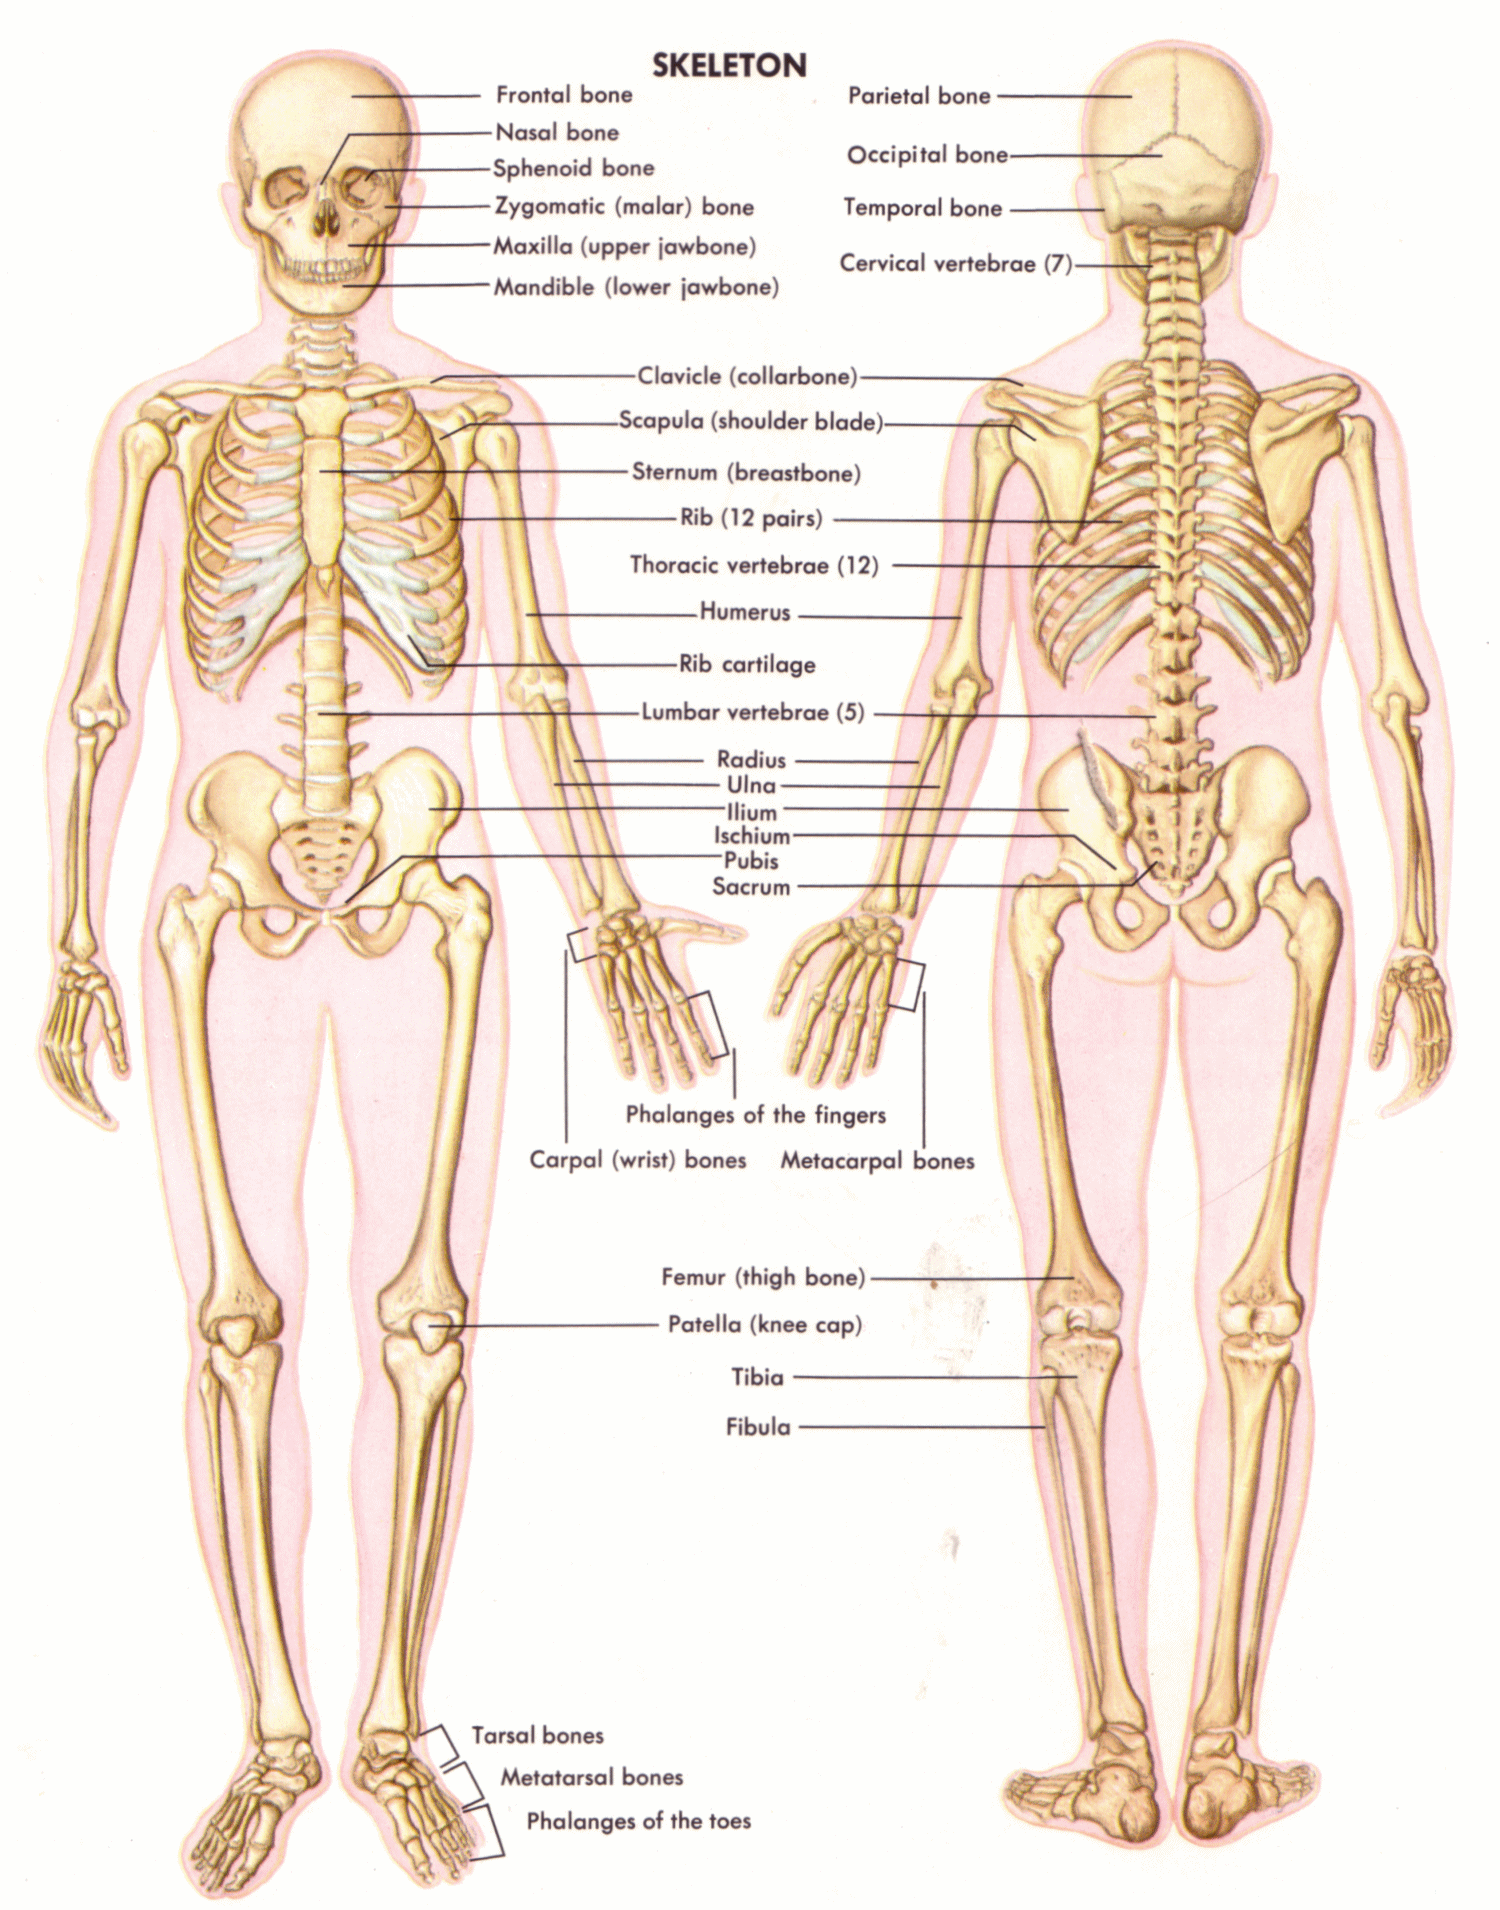 medium resolution of muscles of the body diagram endoszkopcom endoszkopcom wiring muscles of the body diagram endoszkopcom endoszkopcom